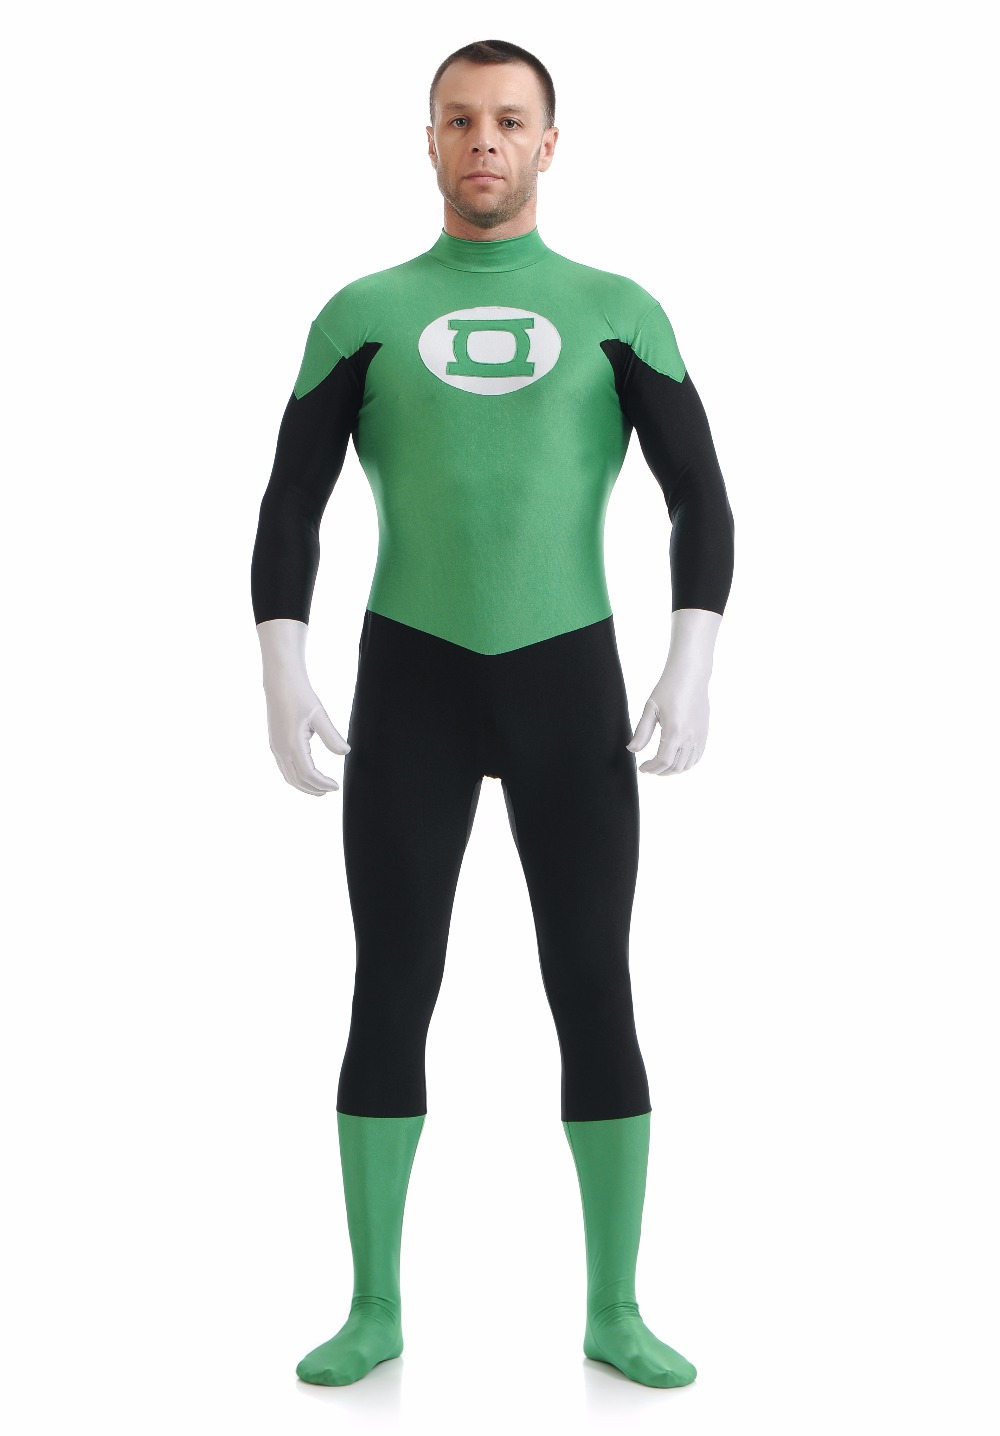 Aliexpress.com : Buy Nylon Lycra Green Lantern Halloween Cosplay Costume  Mens Spandex Green Lantern Costume Ideas Superhero Party Fancy Dress  Costums from ... - Aliexpress.com : Buy Nylon Lycra Green Lantern Halloween Cosplay